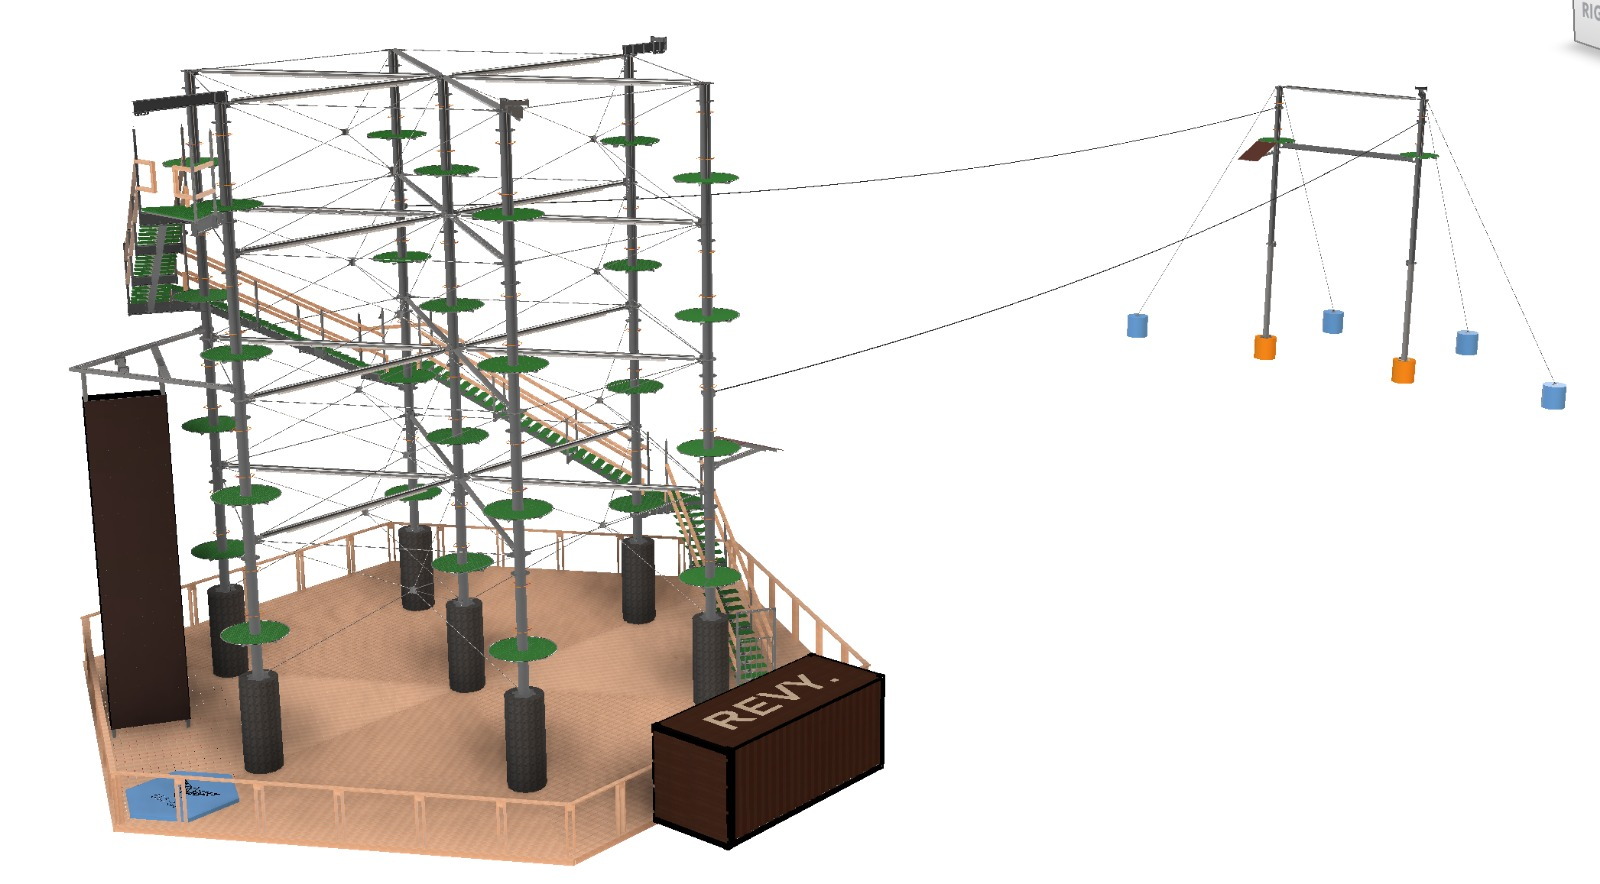 Revelstoke's New High Ropes Course Project